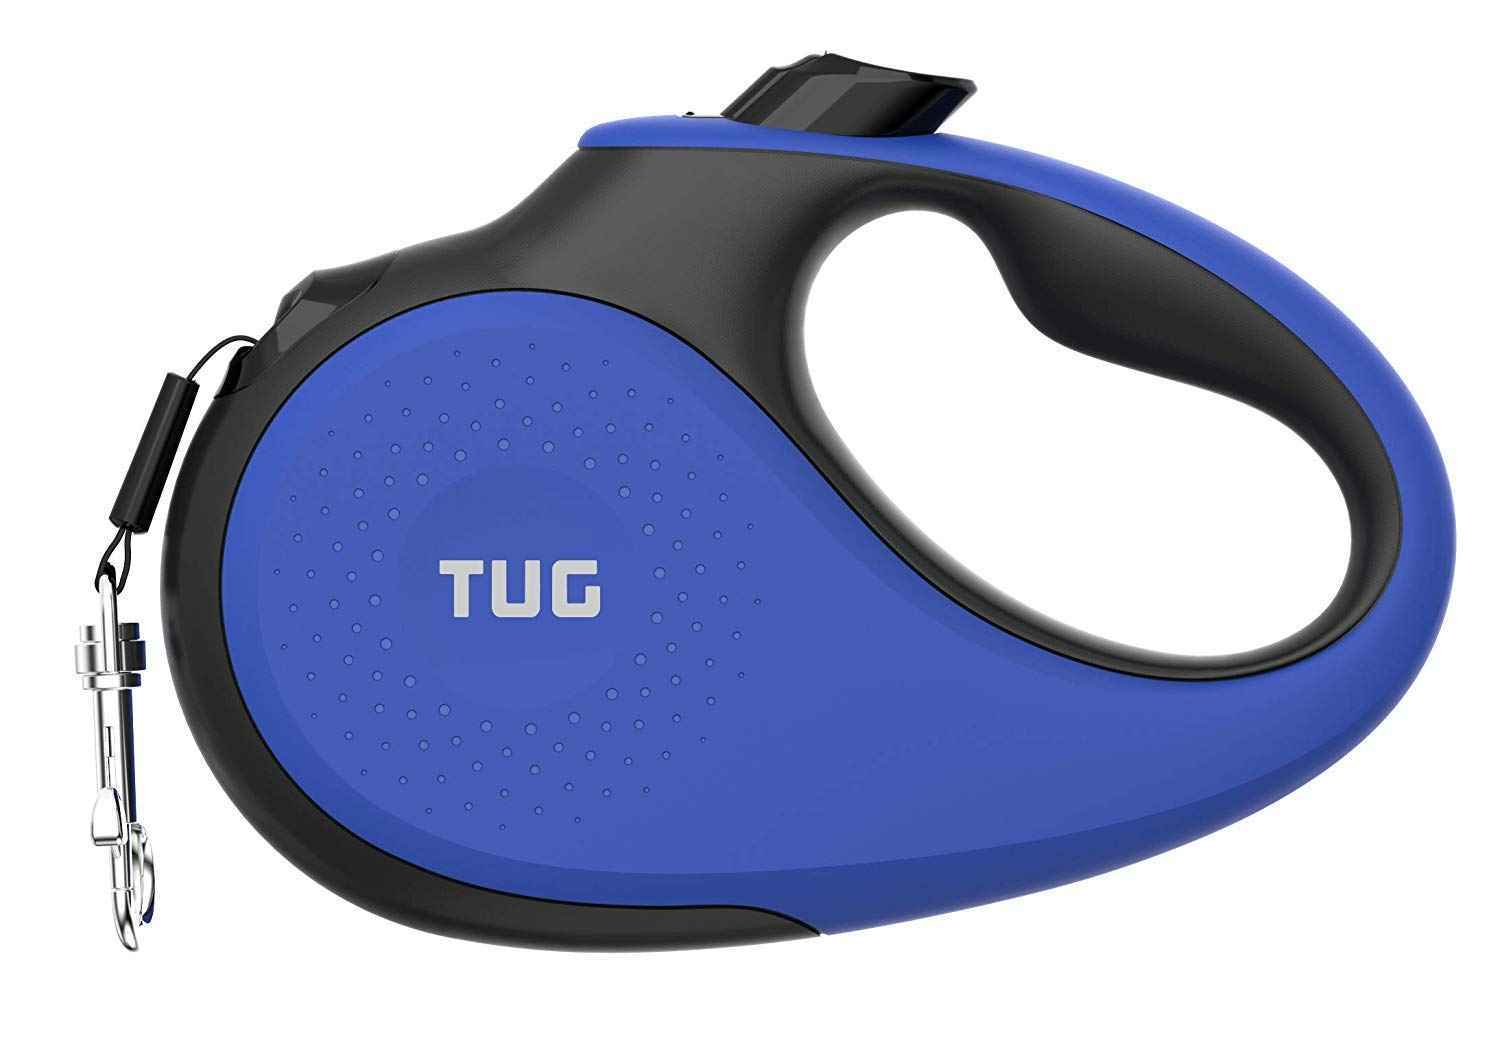 TUG Patented 360° Tangle-Free, Heavy Duty Retractable Dog Leash with Anti-Slip Handle; 16 ft Strong Nylon Tape/Ribbon; One-Handed Brake, Pause, Lock (Large, Blue)